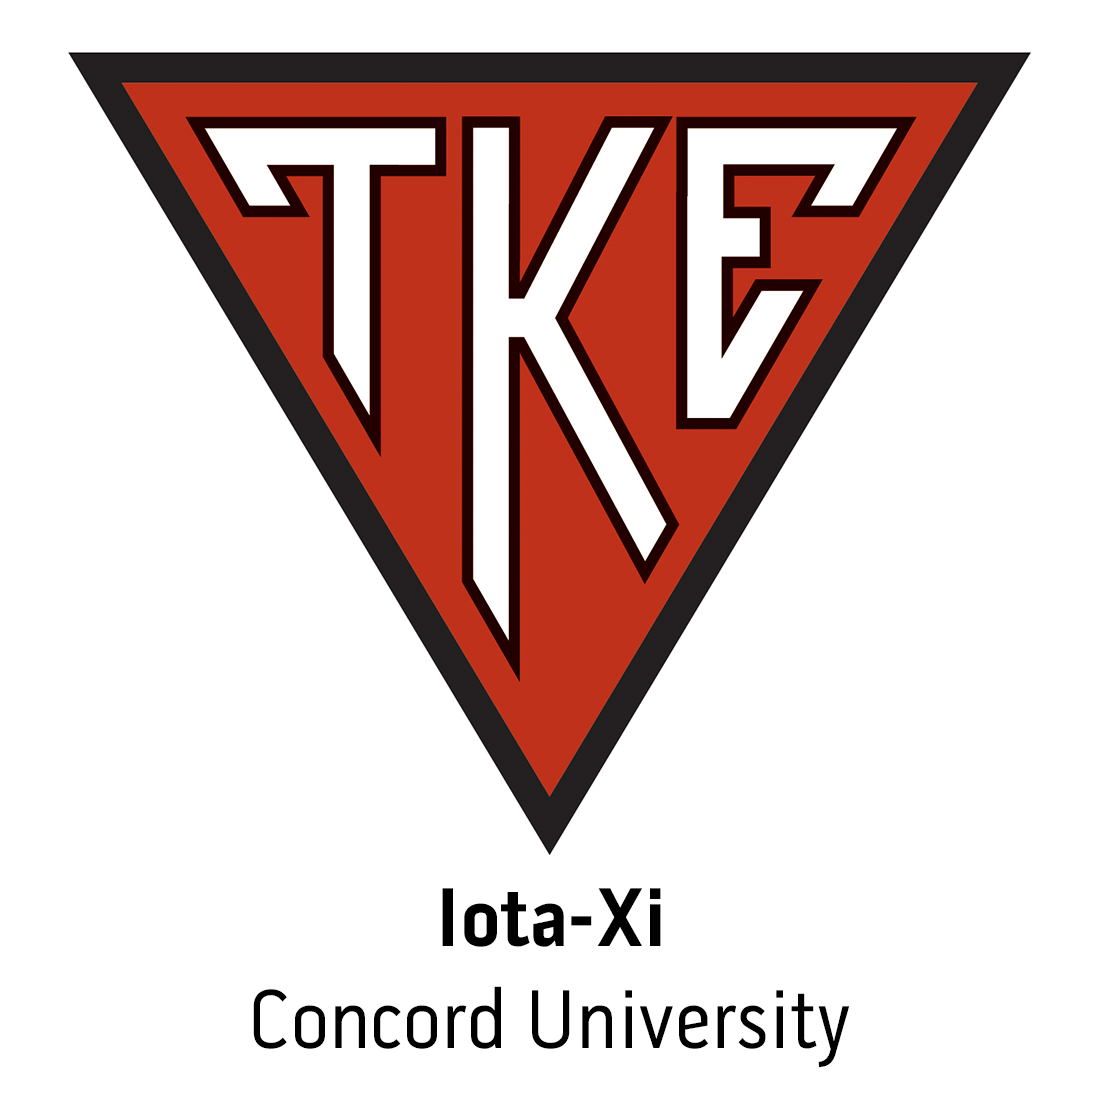 Iota-Xi Chapter at Concord University